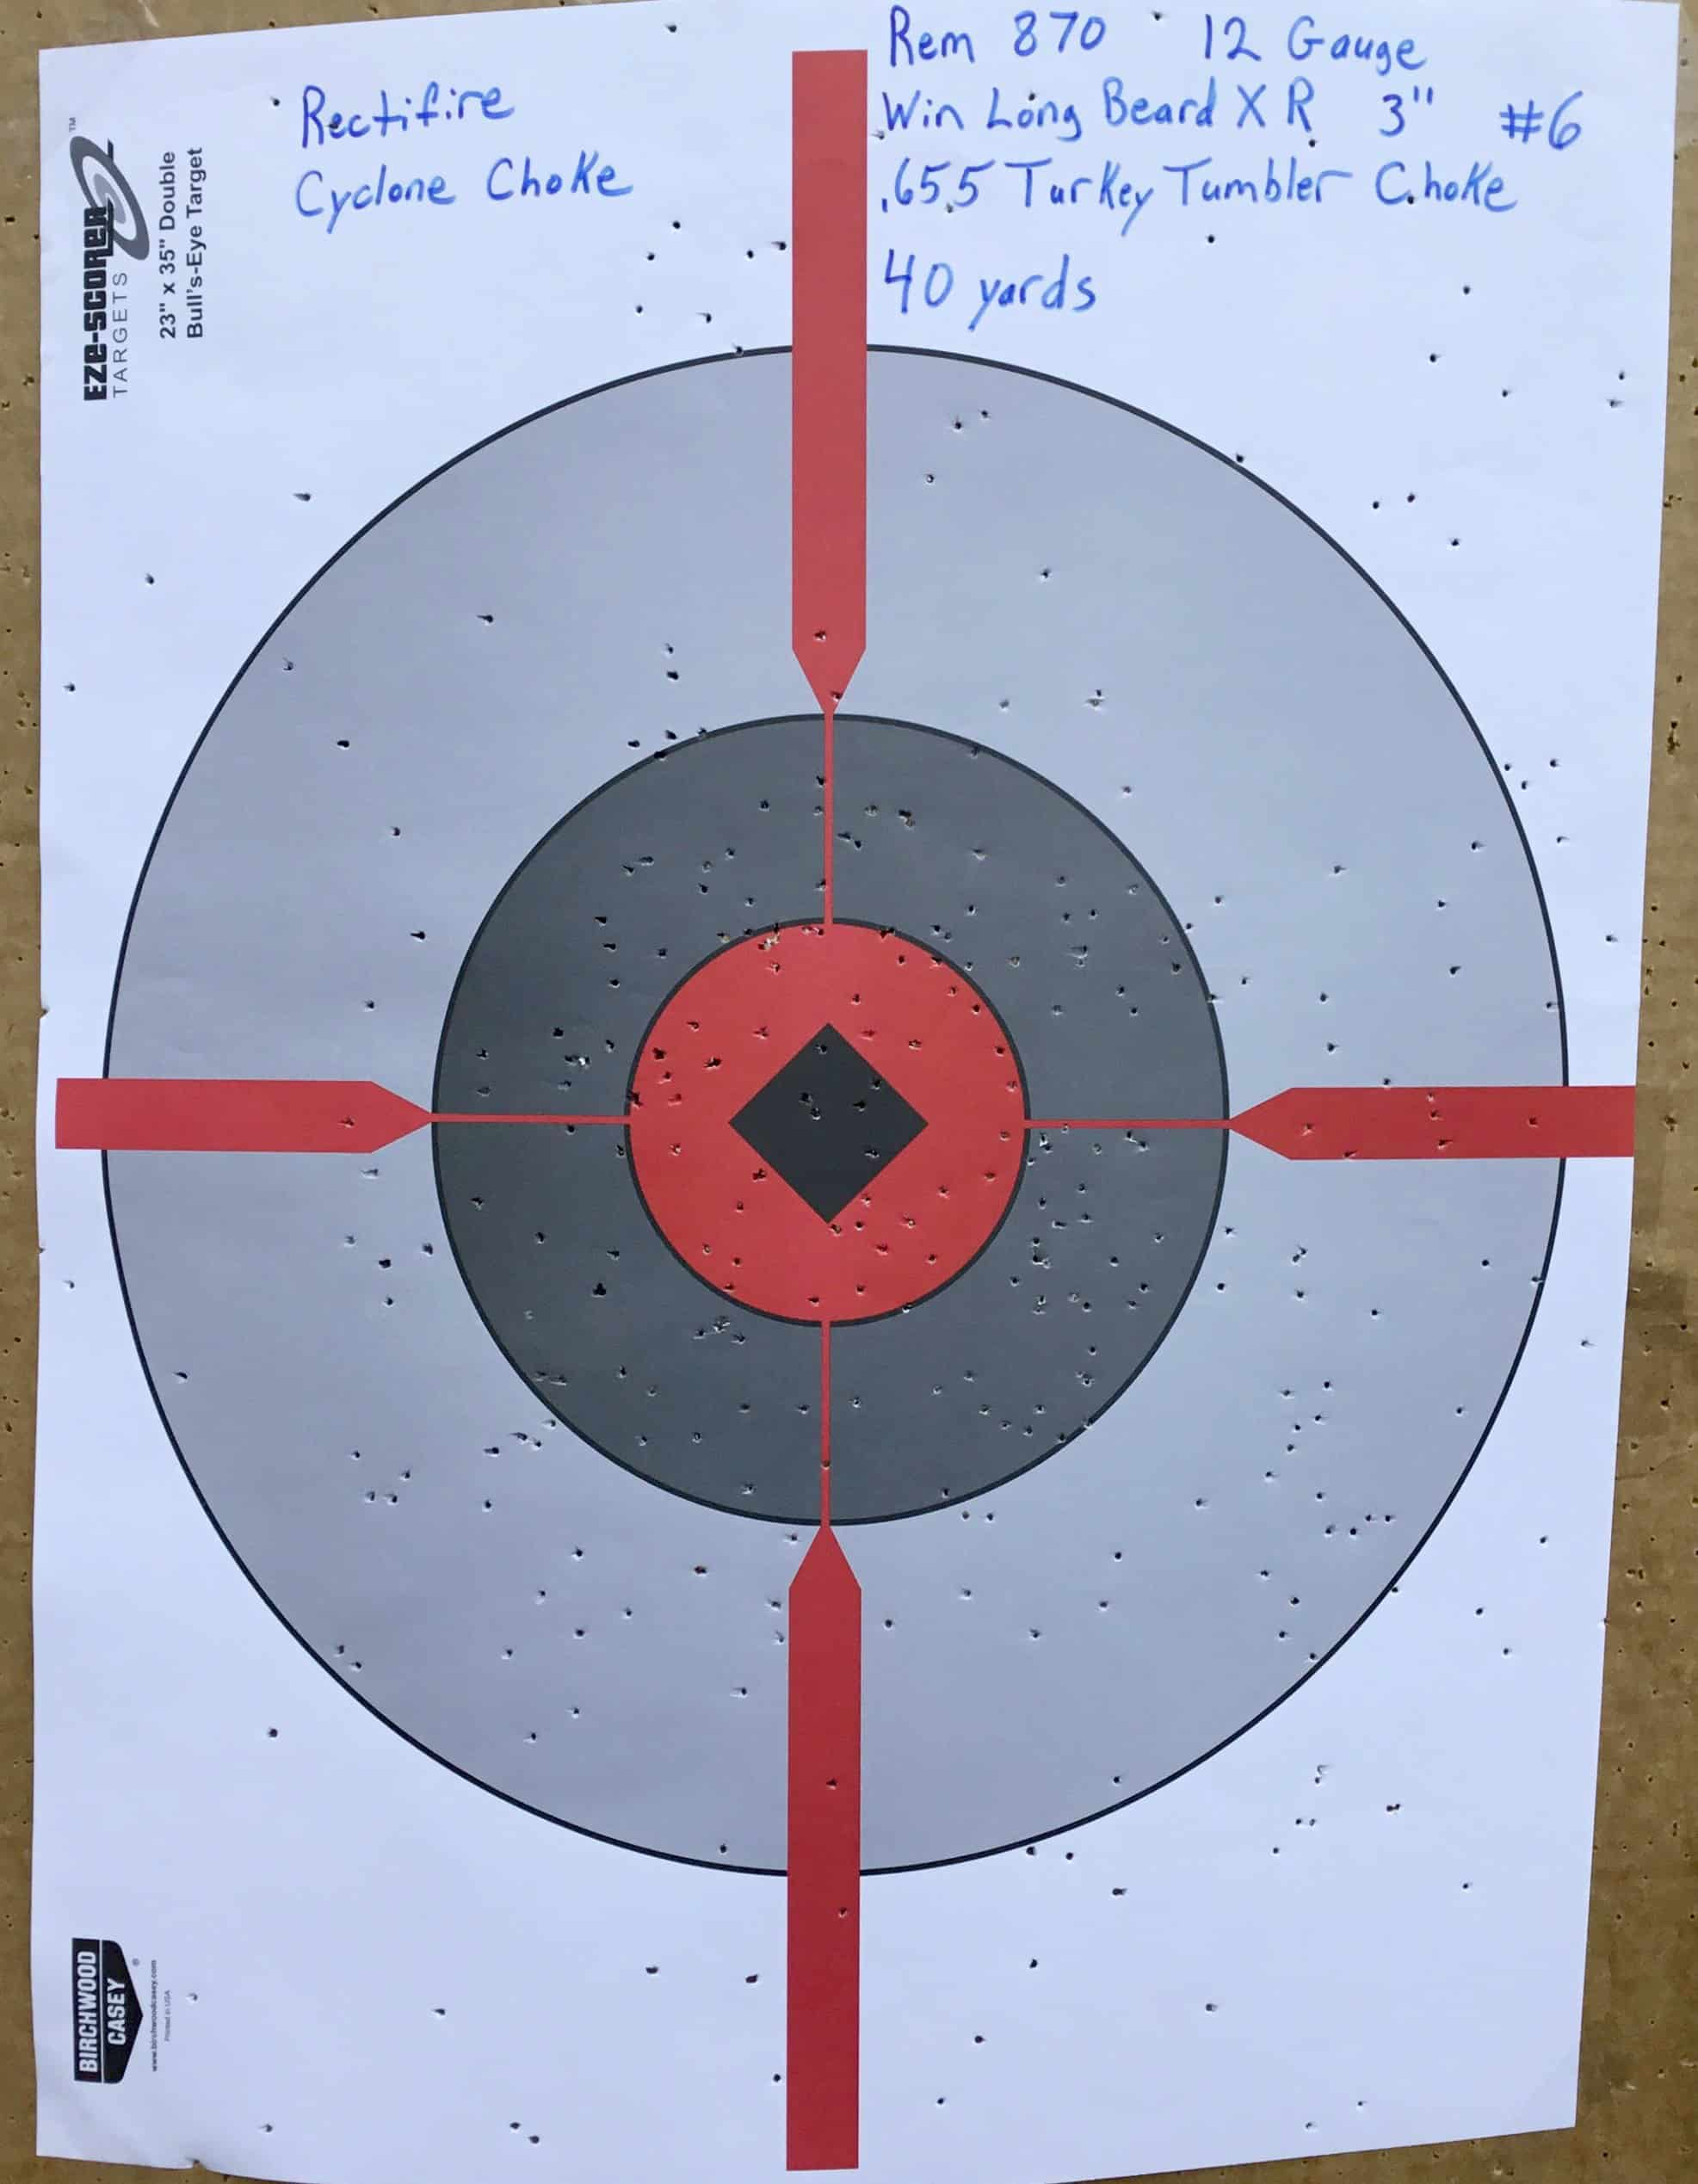 Remington 870 12 Gauge @ 40 yds.